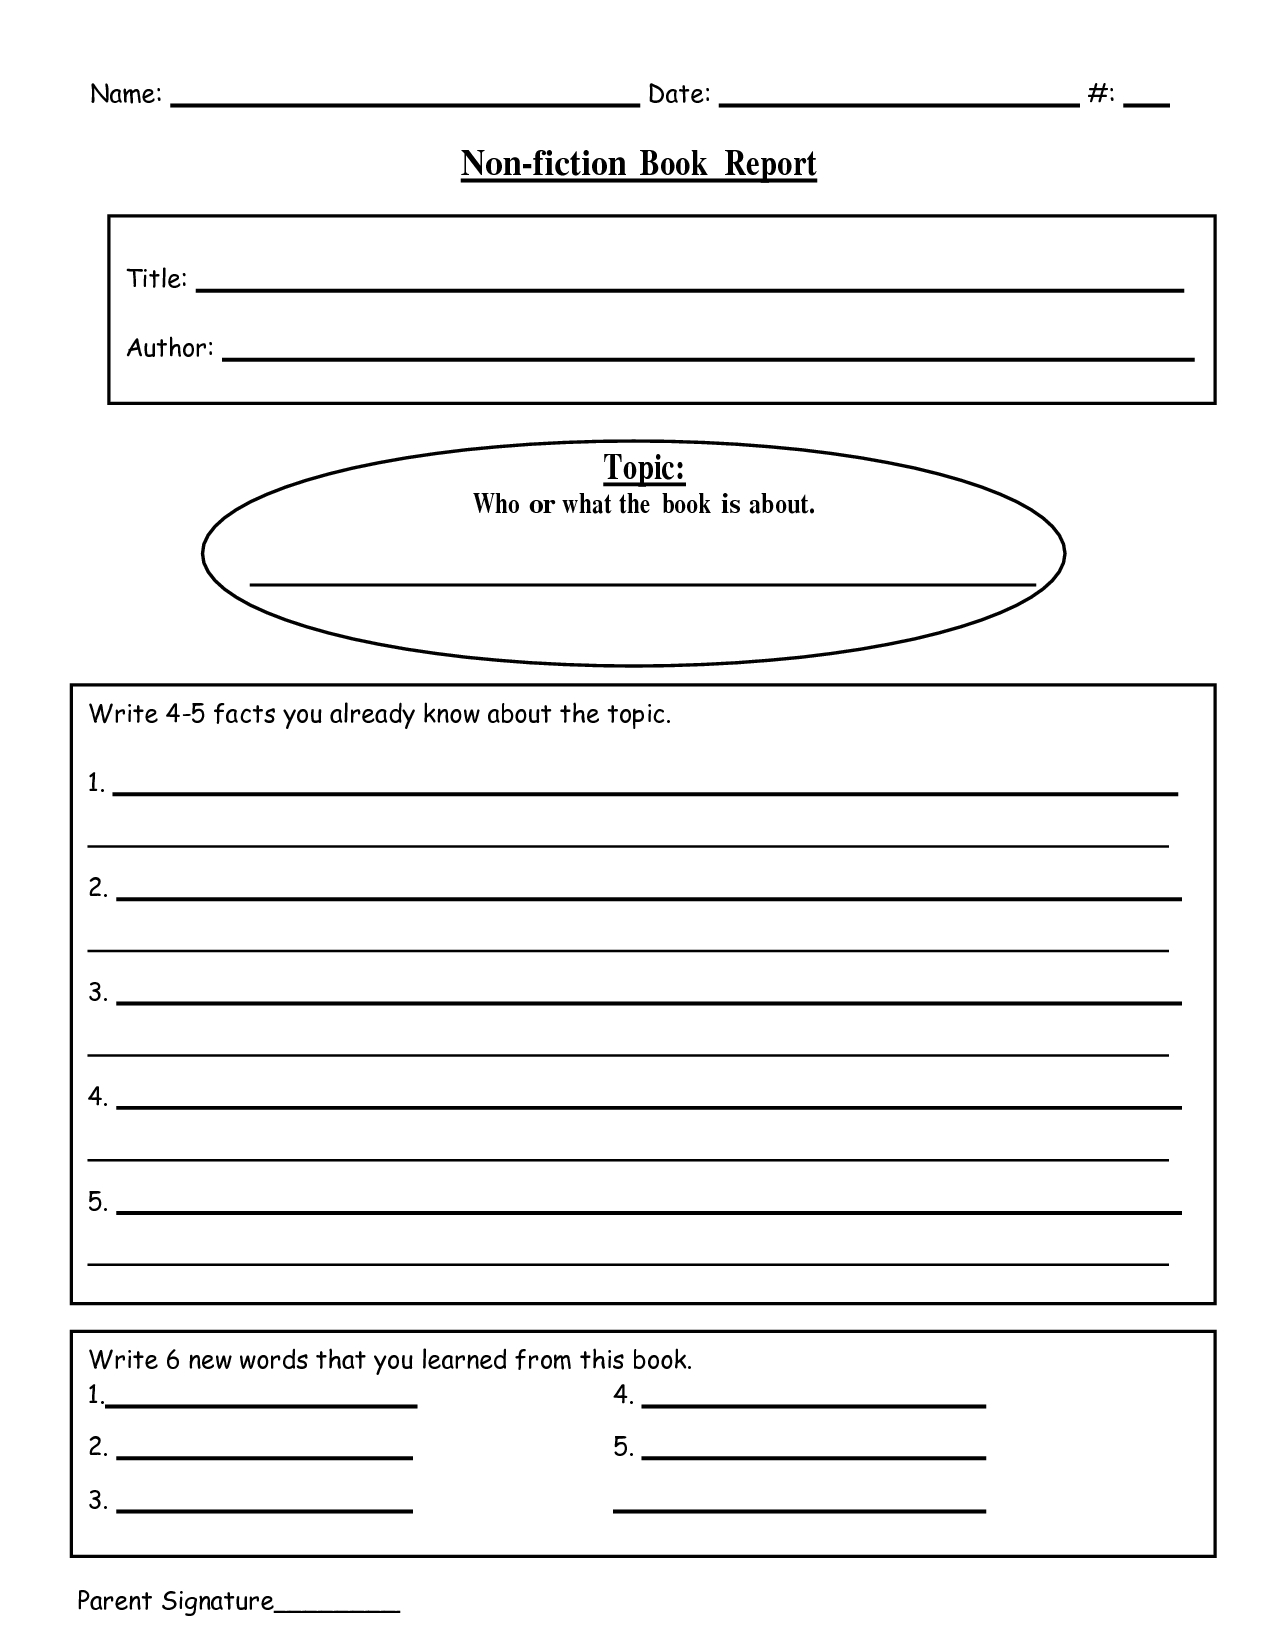 Book Report Free Printable - Tutlin.psstech.co - Free Printable Book Report Forms